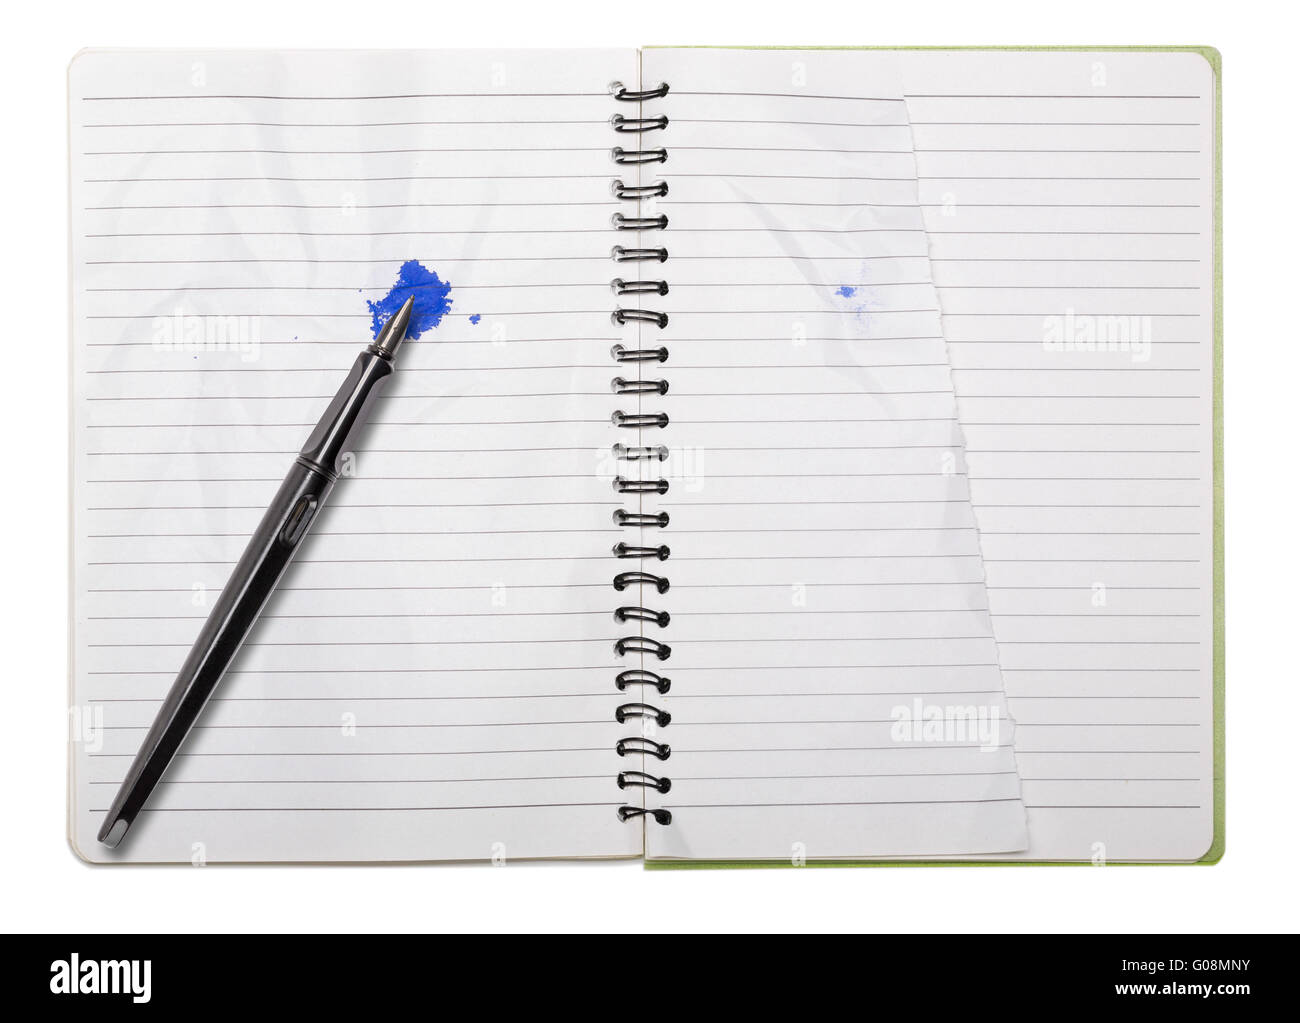 Used Blank Note Book With Ring Binder, Tattered Page And Fountain Pen,  Isolated On